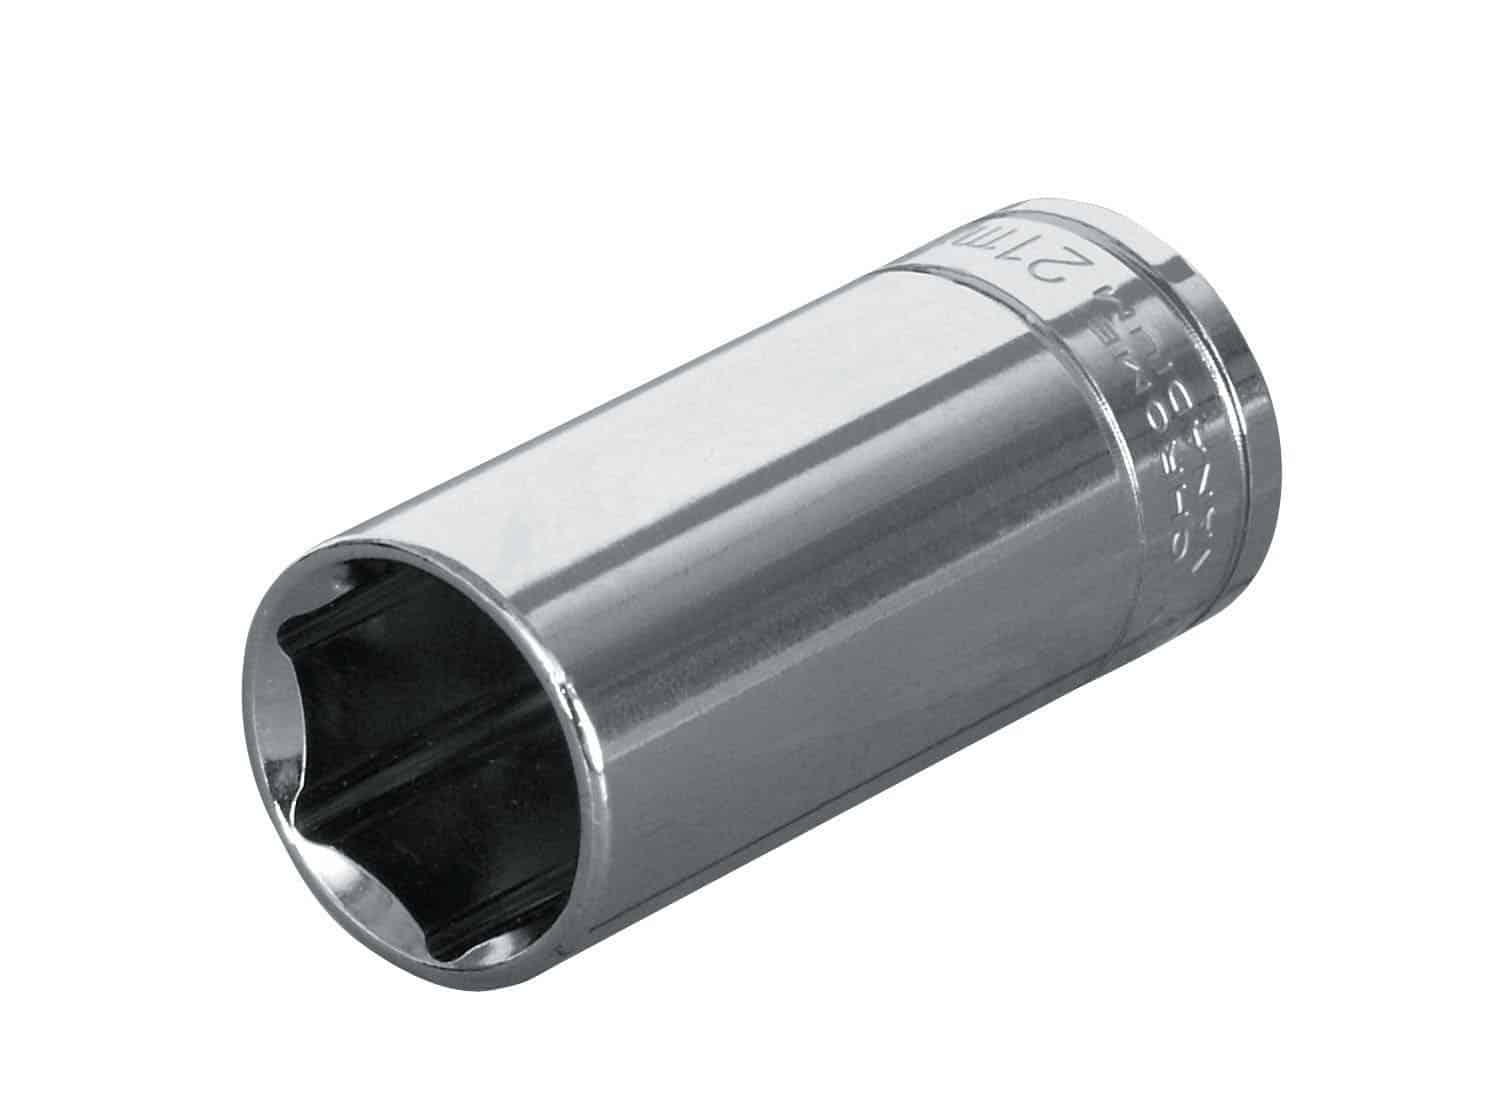 "EXPERT E030224 - 1/4"" Square Drive Metric Long 12Pt Socket 14mm"